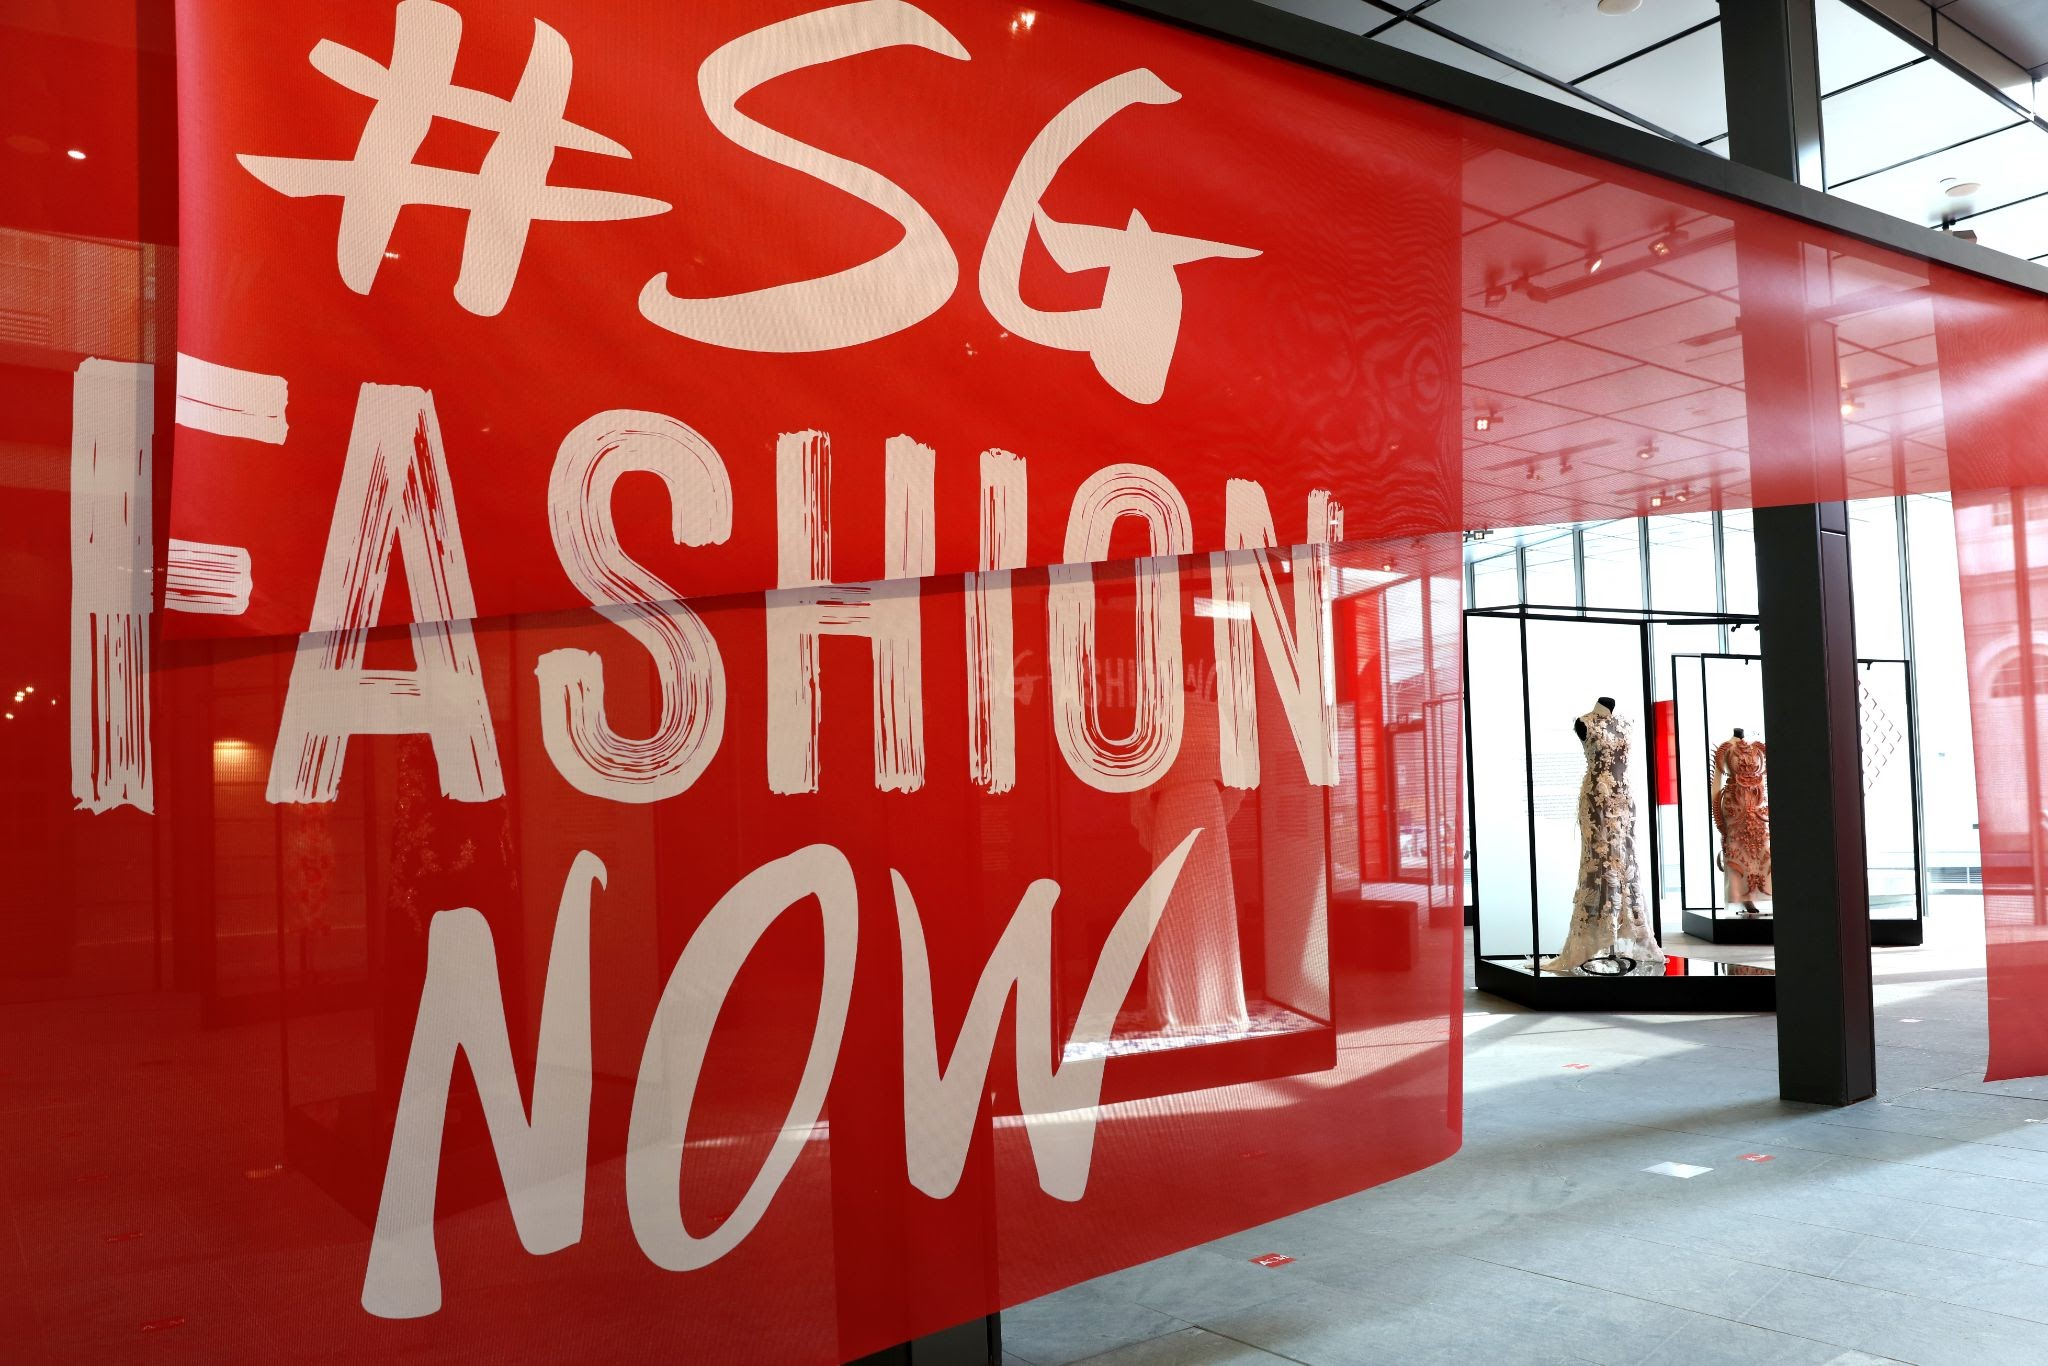 #SGFASHIONNOW will also be held in 2022. Photo courtesy: Asian Civilisations Museum